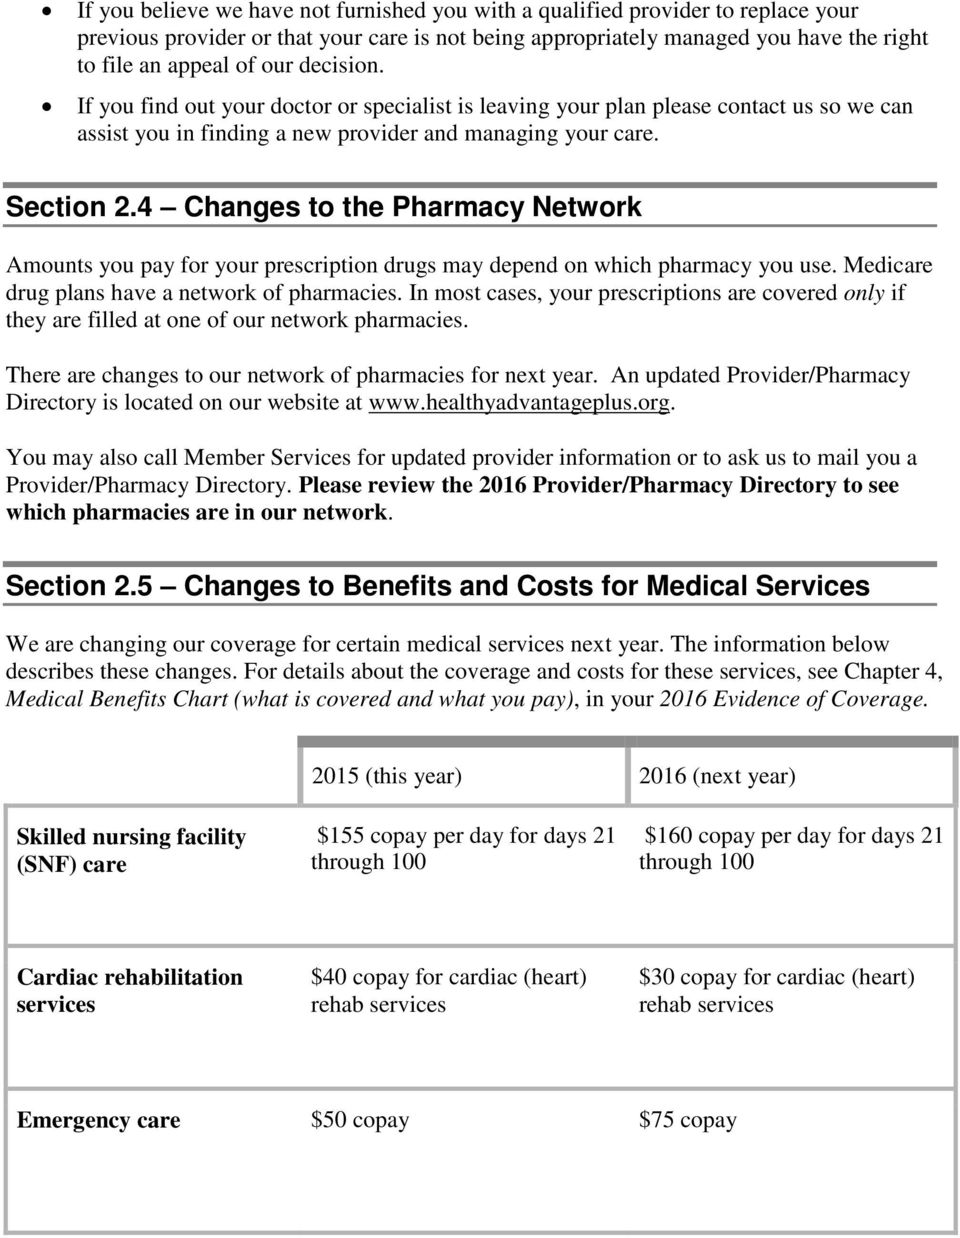 4 Changes to the Pharmacy Network Amounts you pay for your prescription drugs may depend on which pharmacy you use. Medicare drug plans have a network of pharmacies.